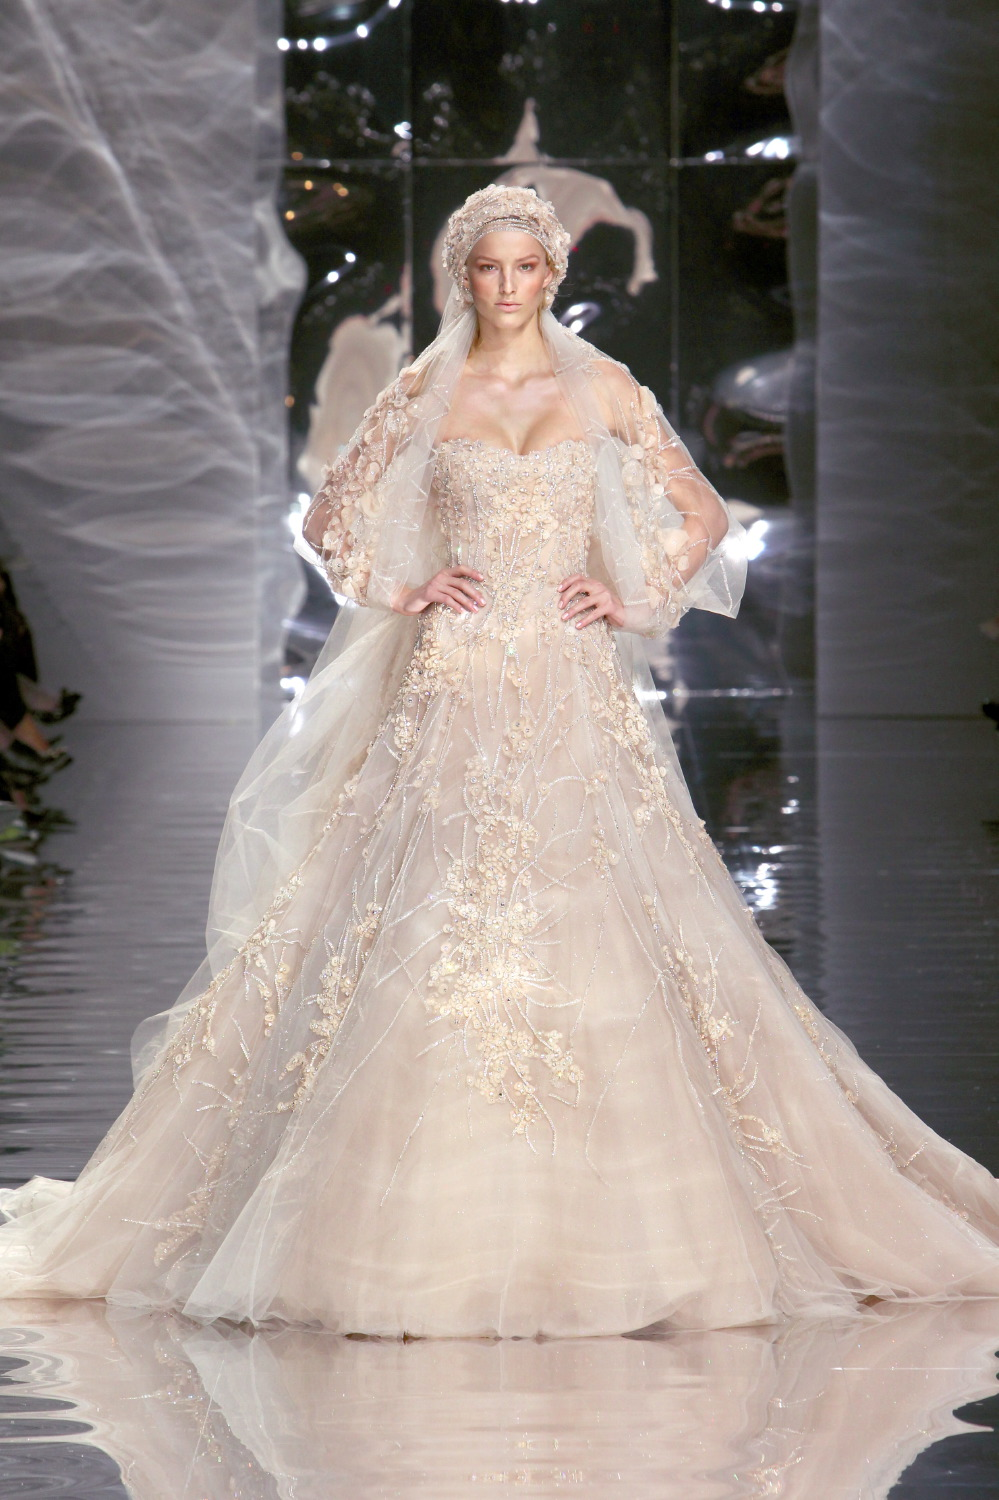 Elie saab haute couture spring 2010 a fairytale world for To have and to haute dress